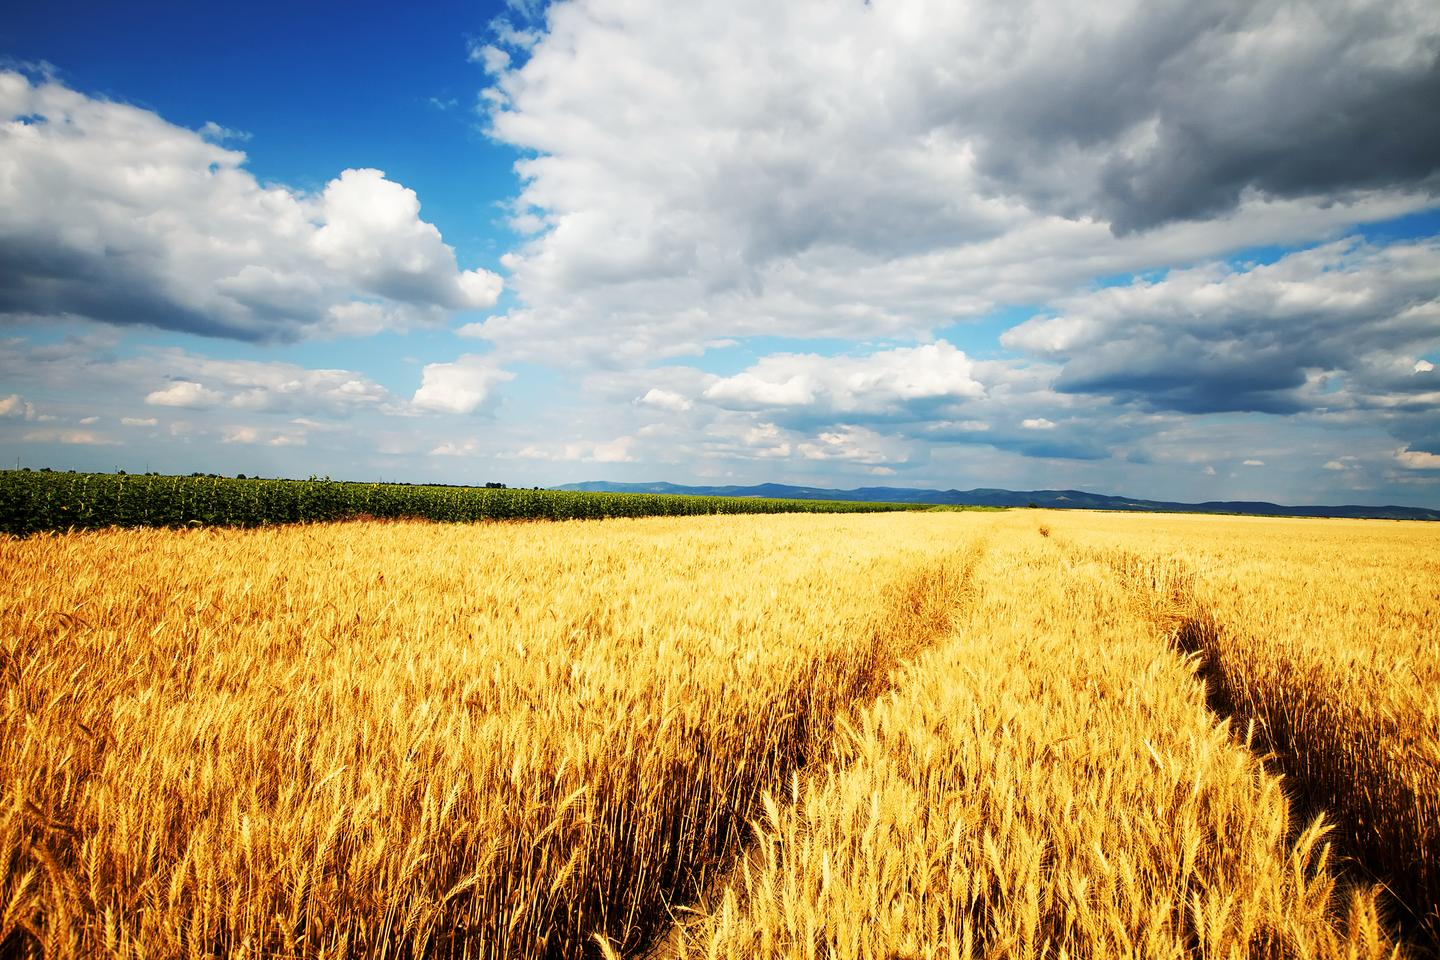 A new study predicts that global crop yields could fall by up to ten percent in the next 36 years (Photo: Shutterstock)